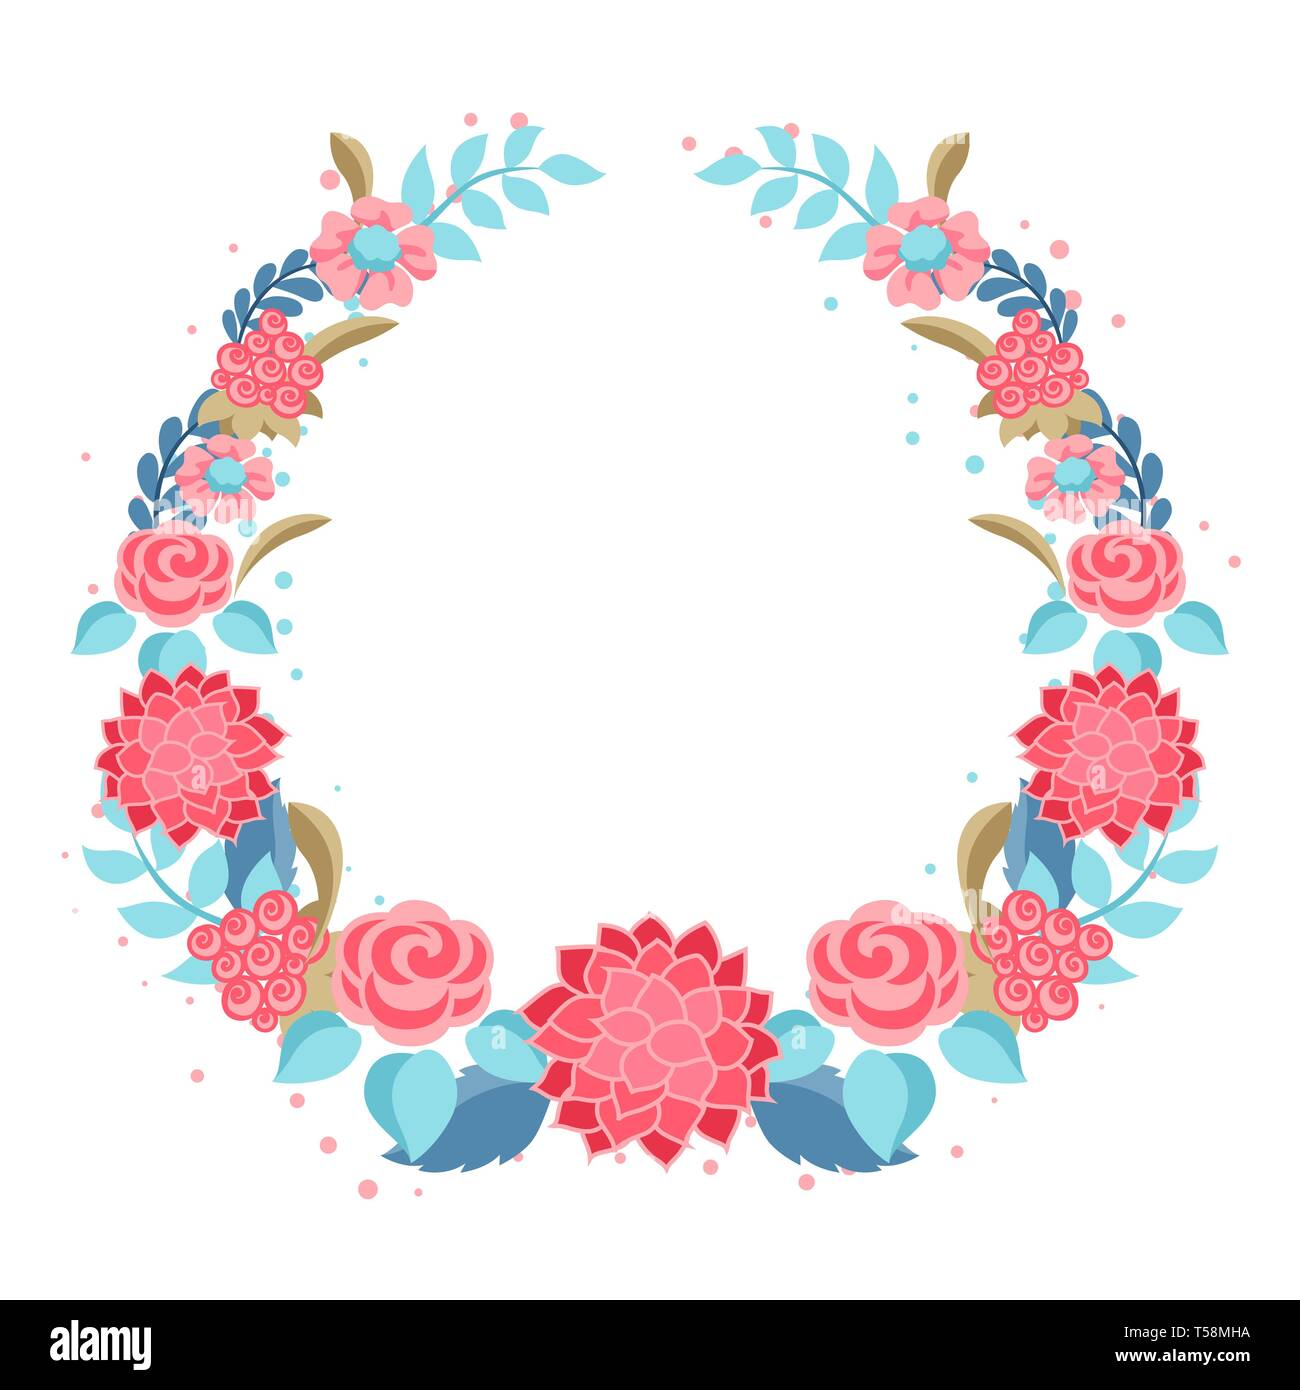 Frame with gentle flowers. - Stock Vector